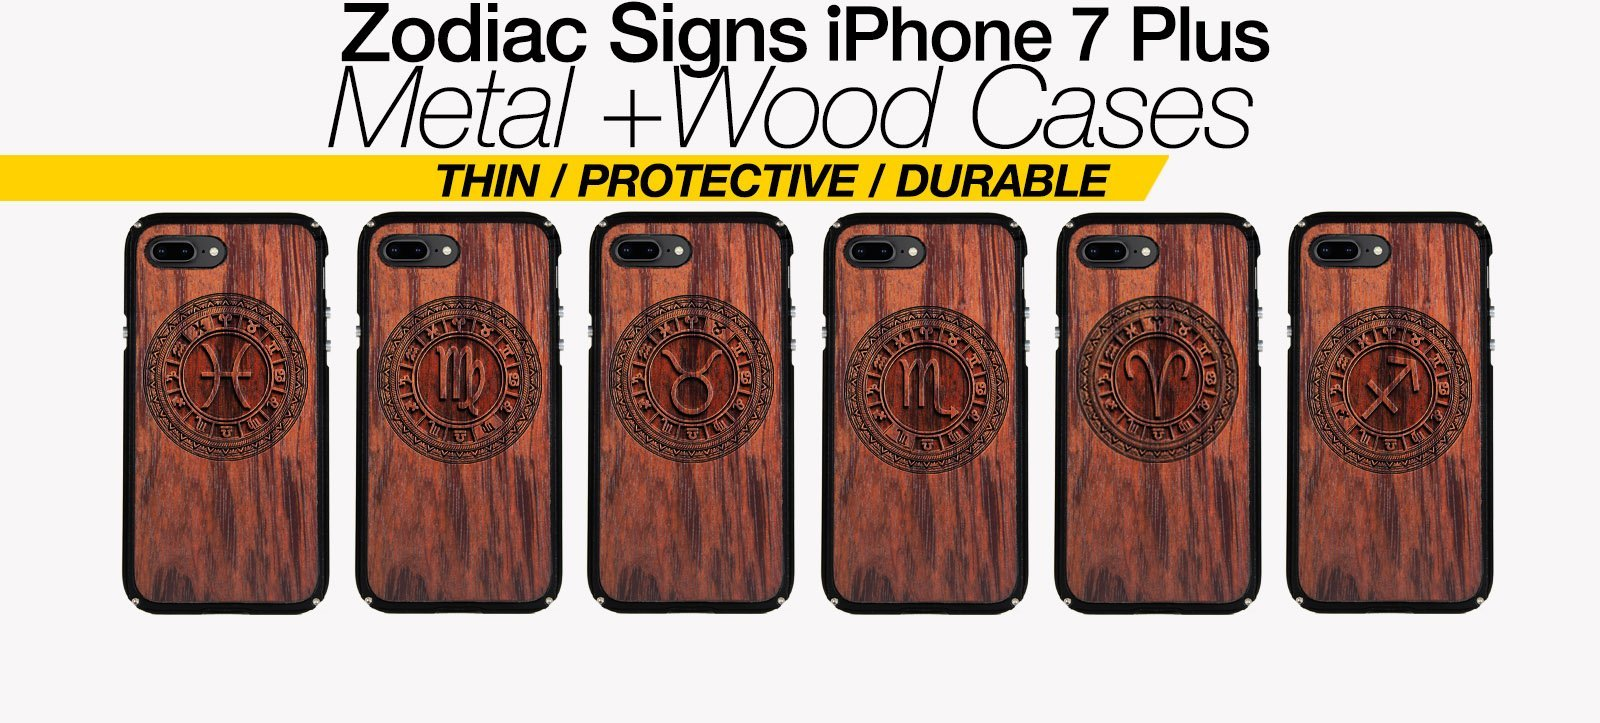 Zodiac Signs iPhone 7 Plus Cases Best Zodiac Horoscope Metal Wood iPhone 7 Plus Covers Gifts For Zodiac Lovers Fans Astrology Cases Phone Birthday Gifts For Astrology Lovers